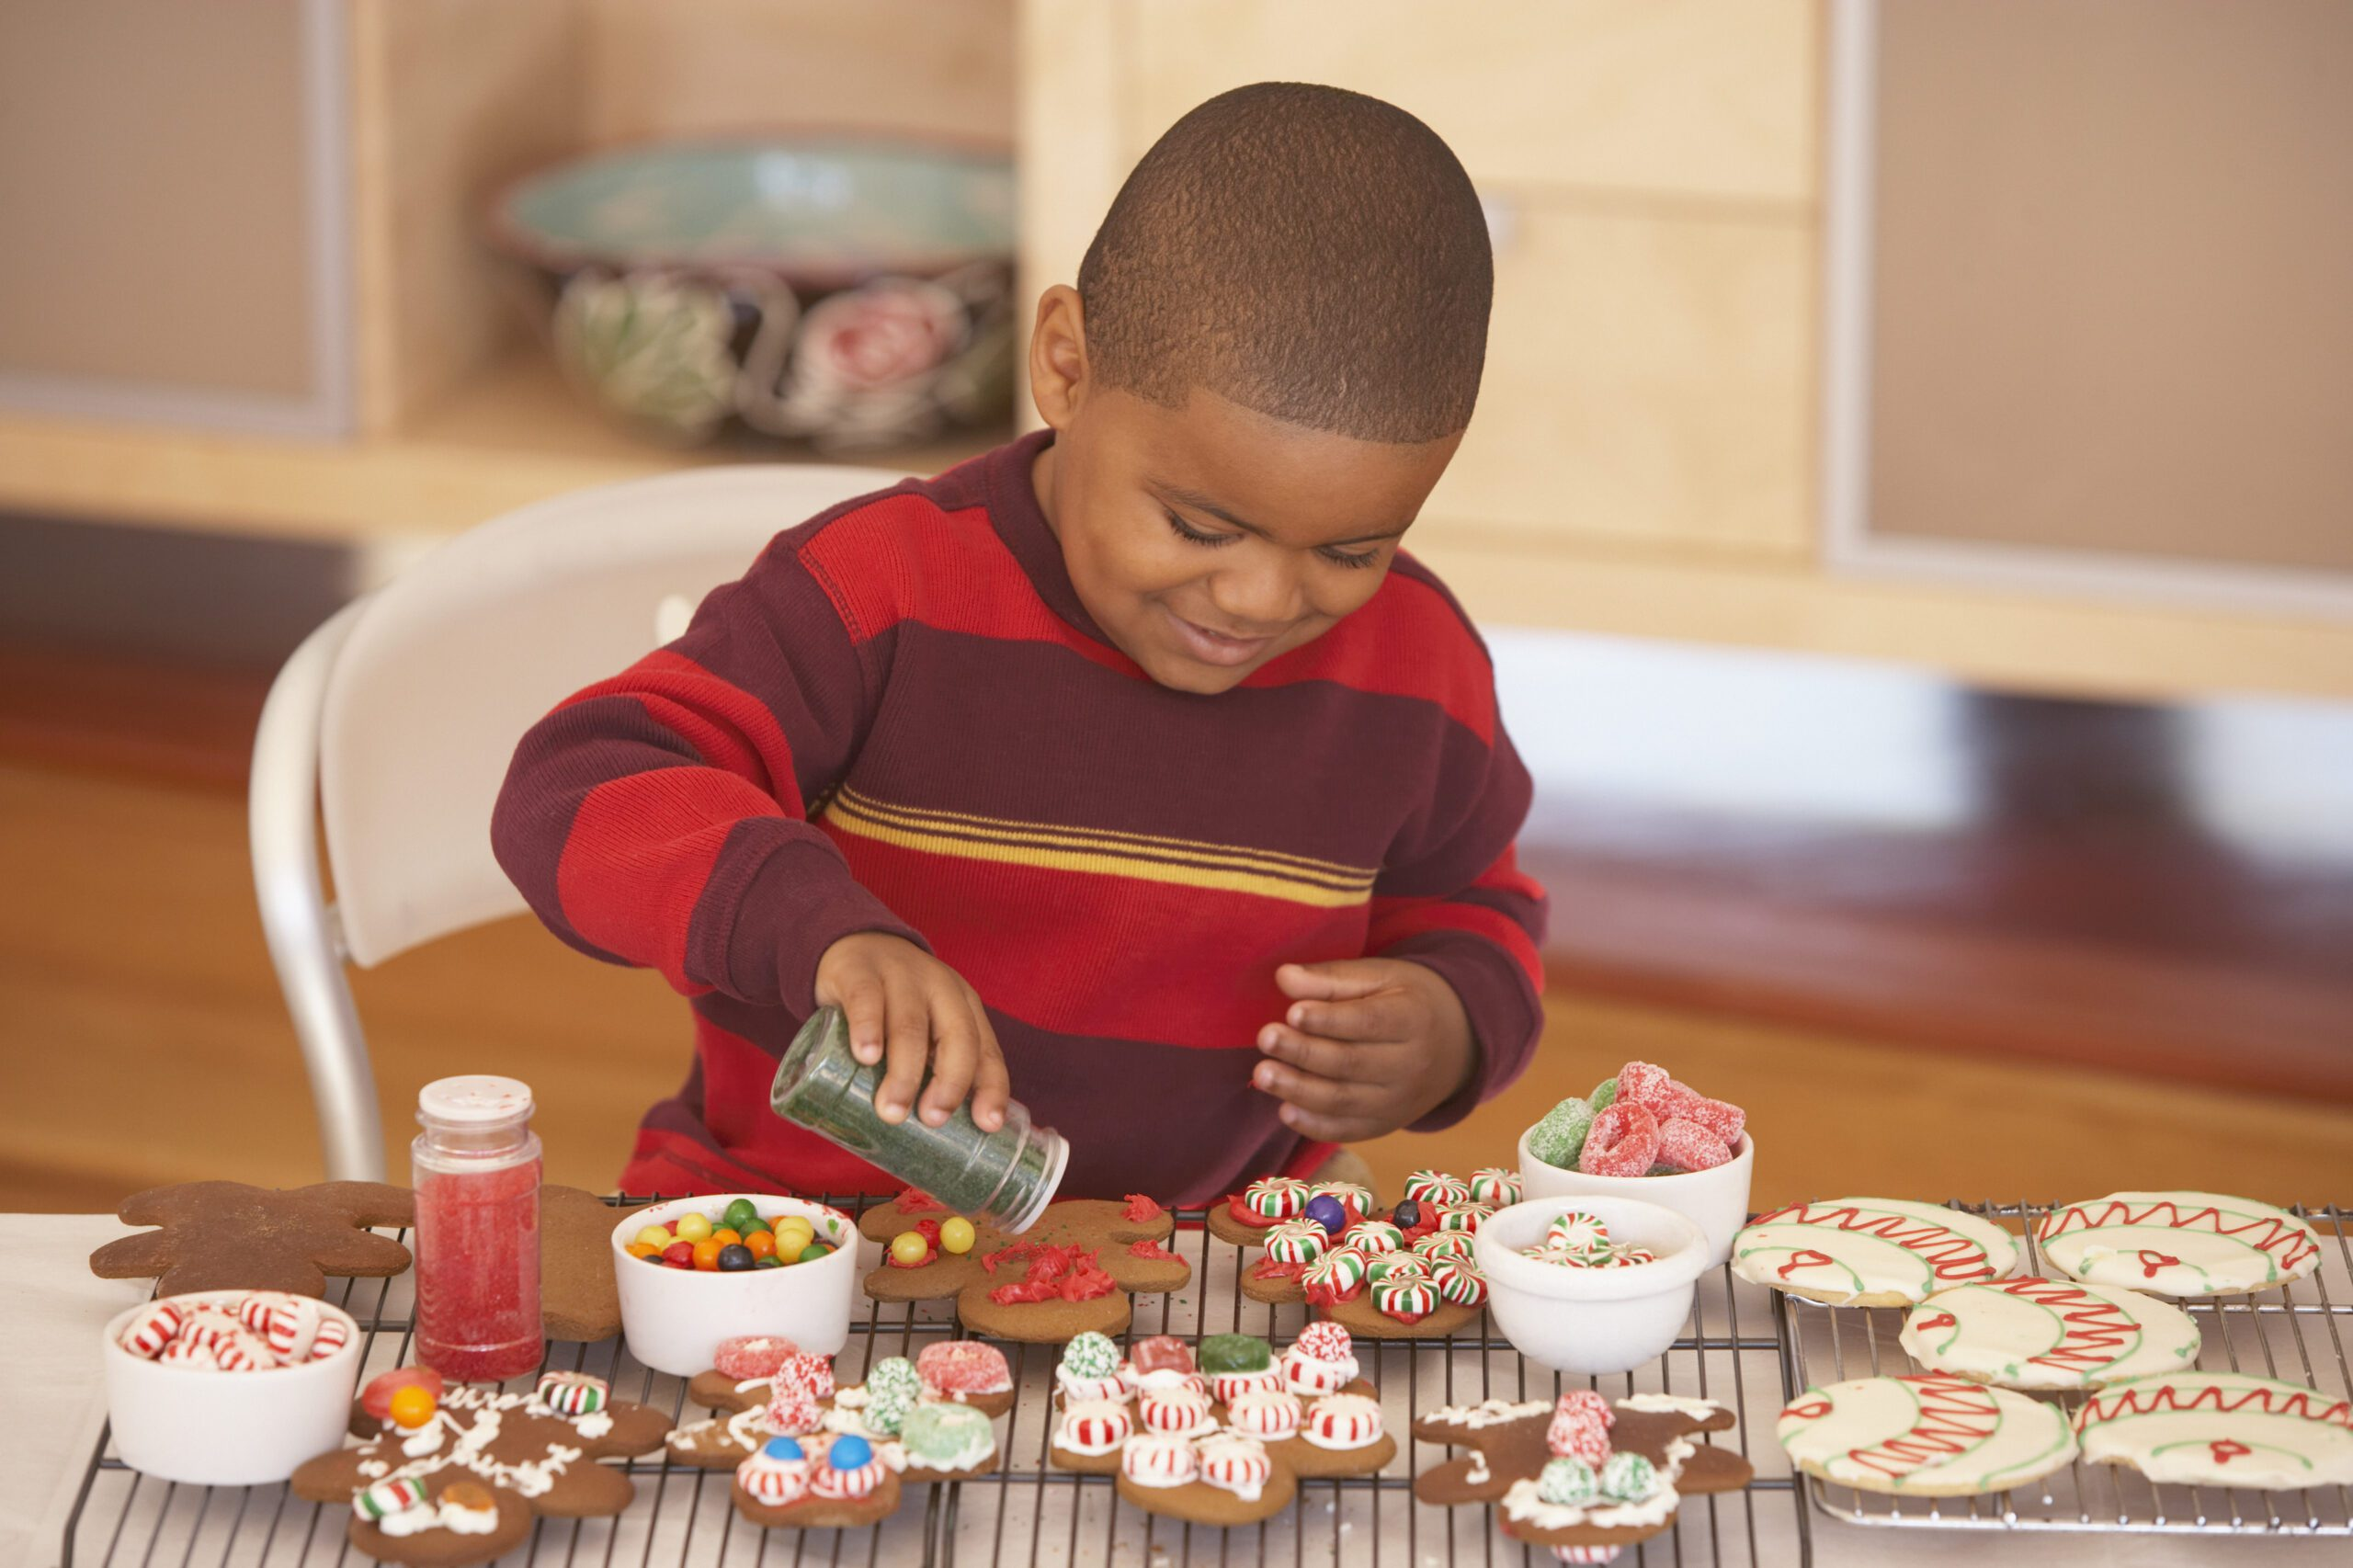 Cookie decorating with sprinkles and candy